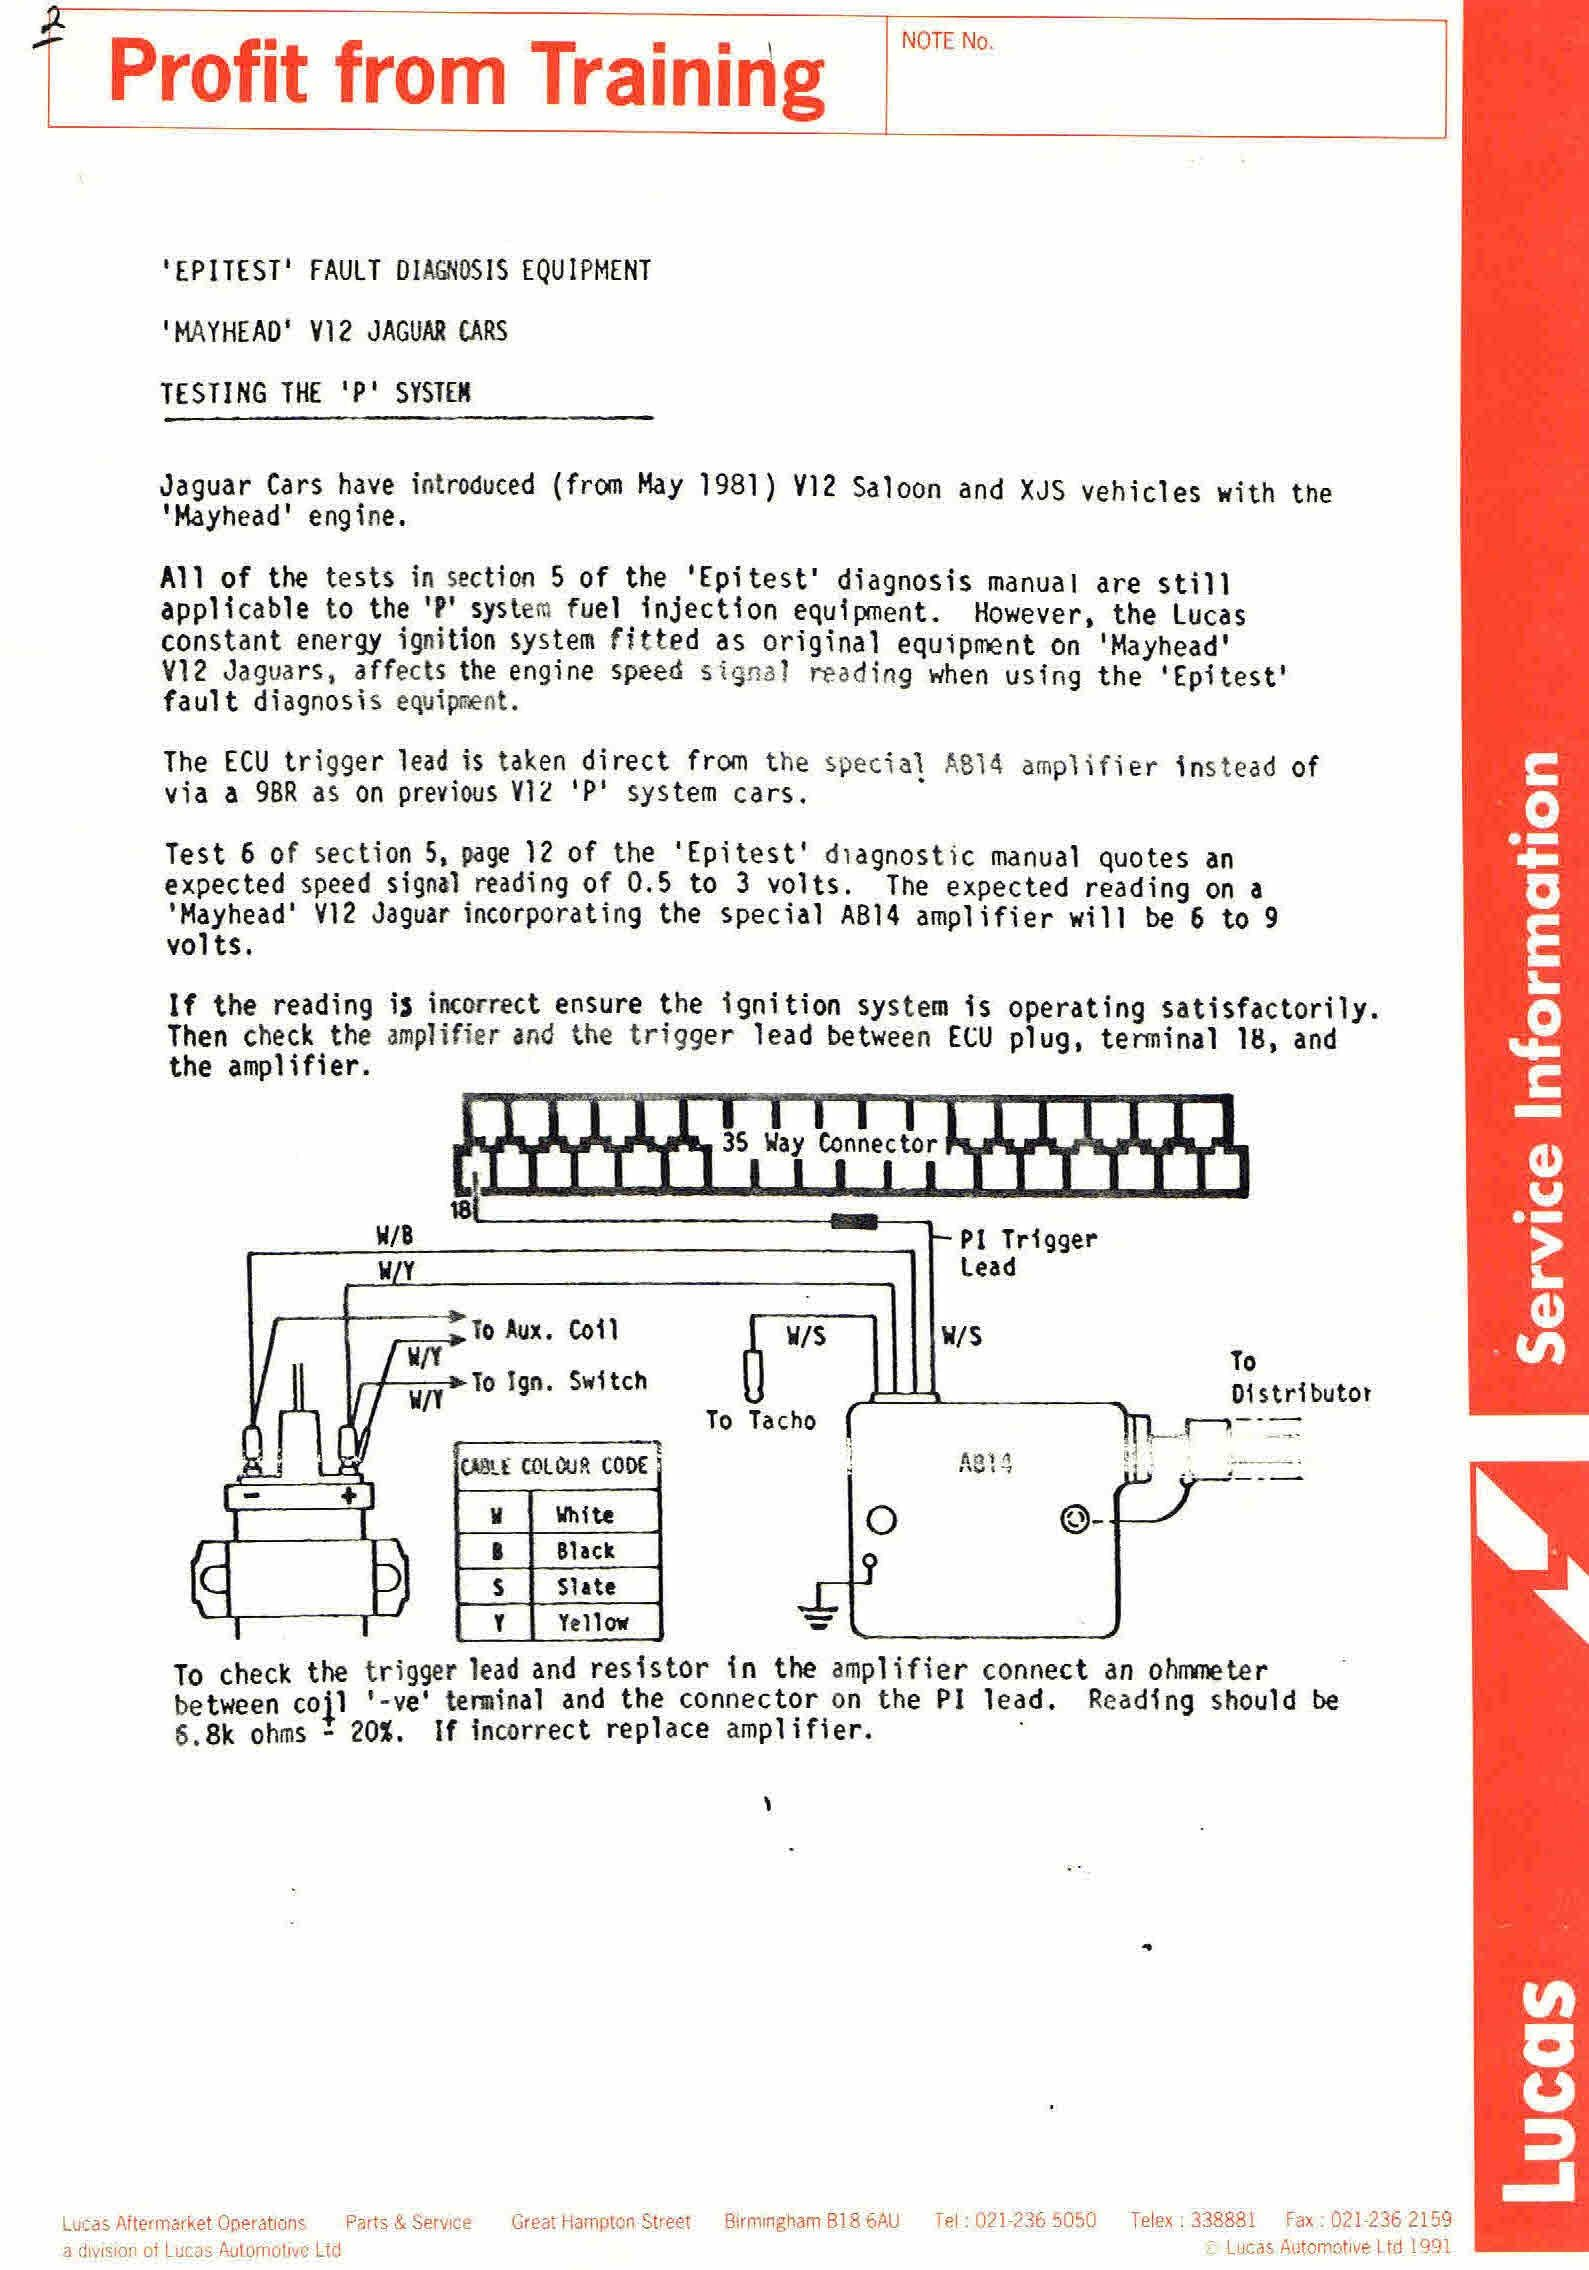 lucas electronic ignition training manuals service notes lucas rh pinterest co uk Propulsion Fault Diagnosis Fault Diagnosis Computer